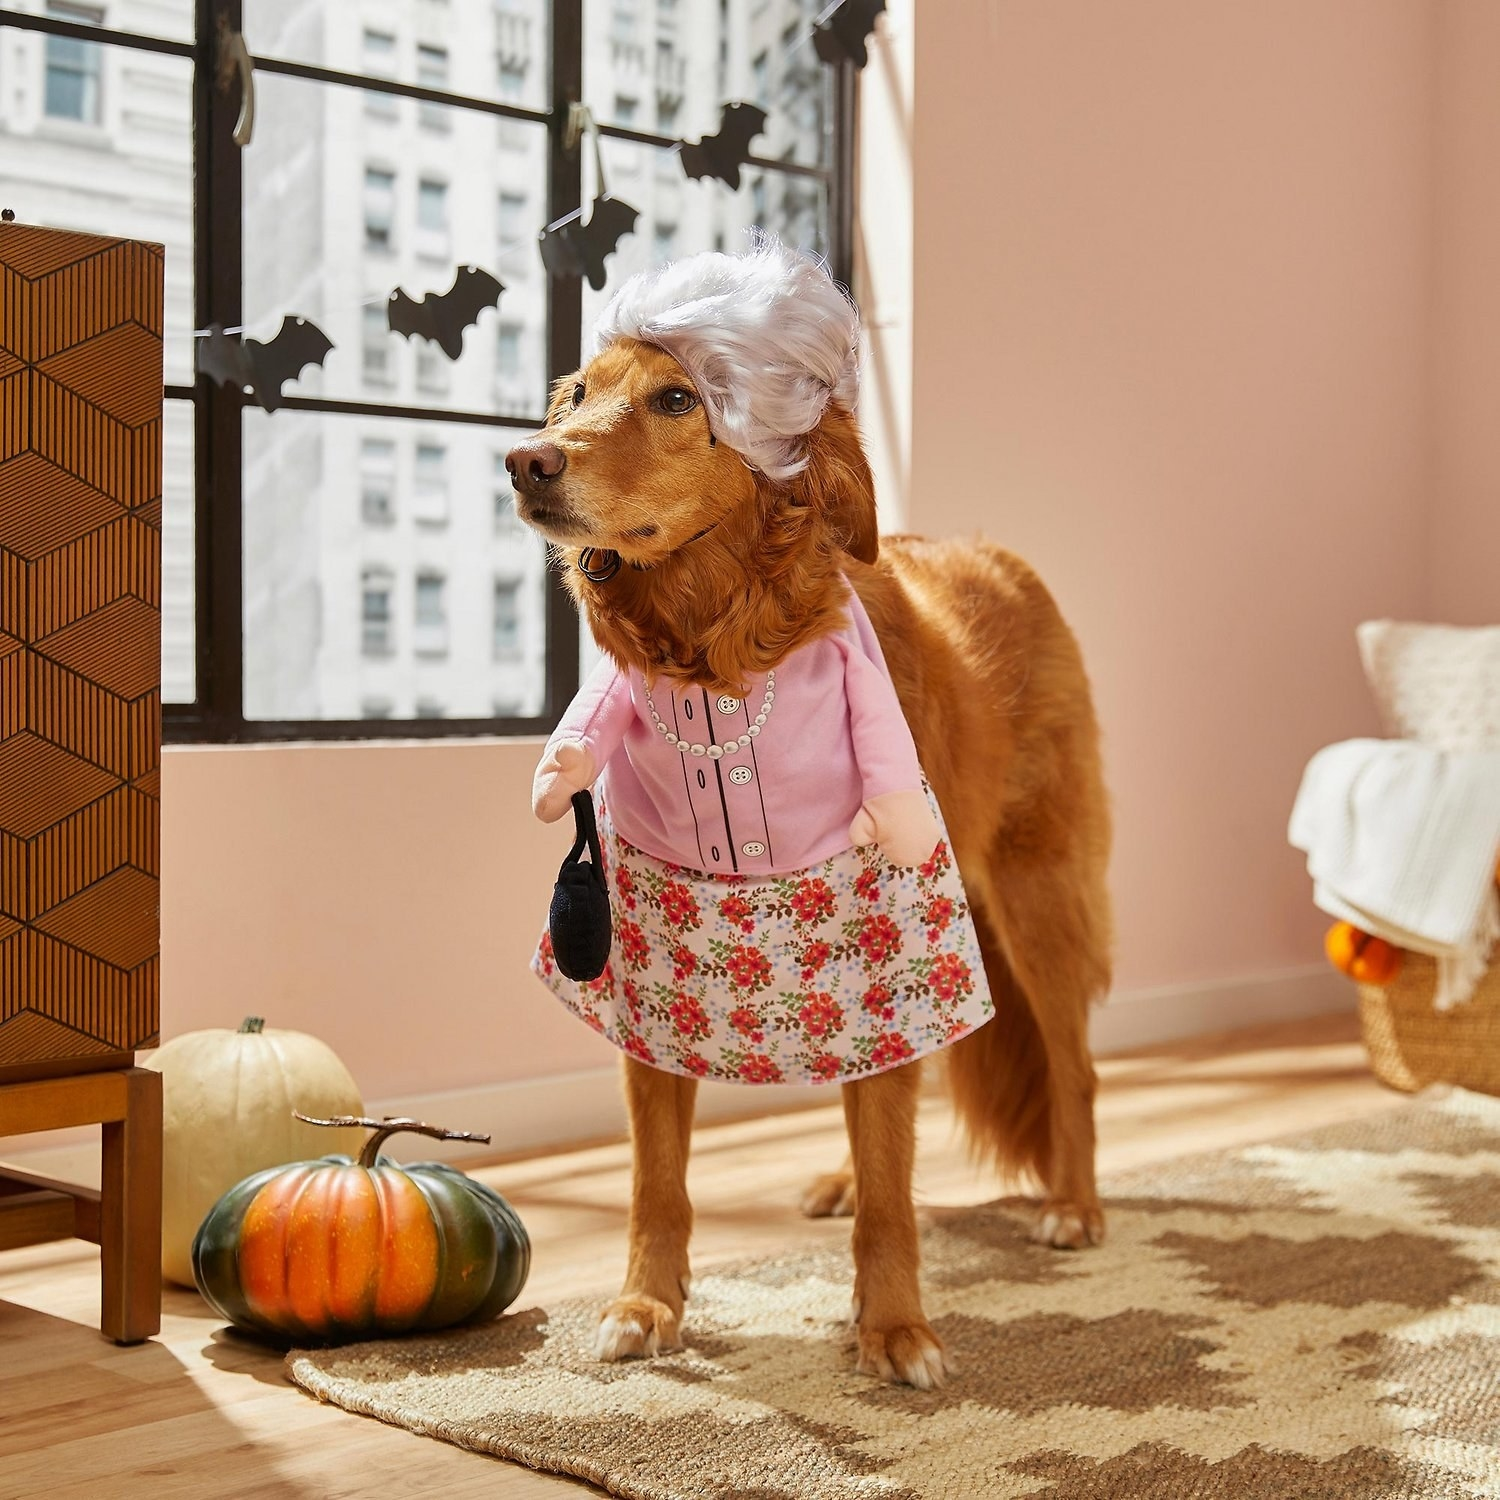 a golden retriever wearing a dress with little arms holding a purse and a grey wig